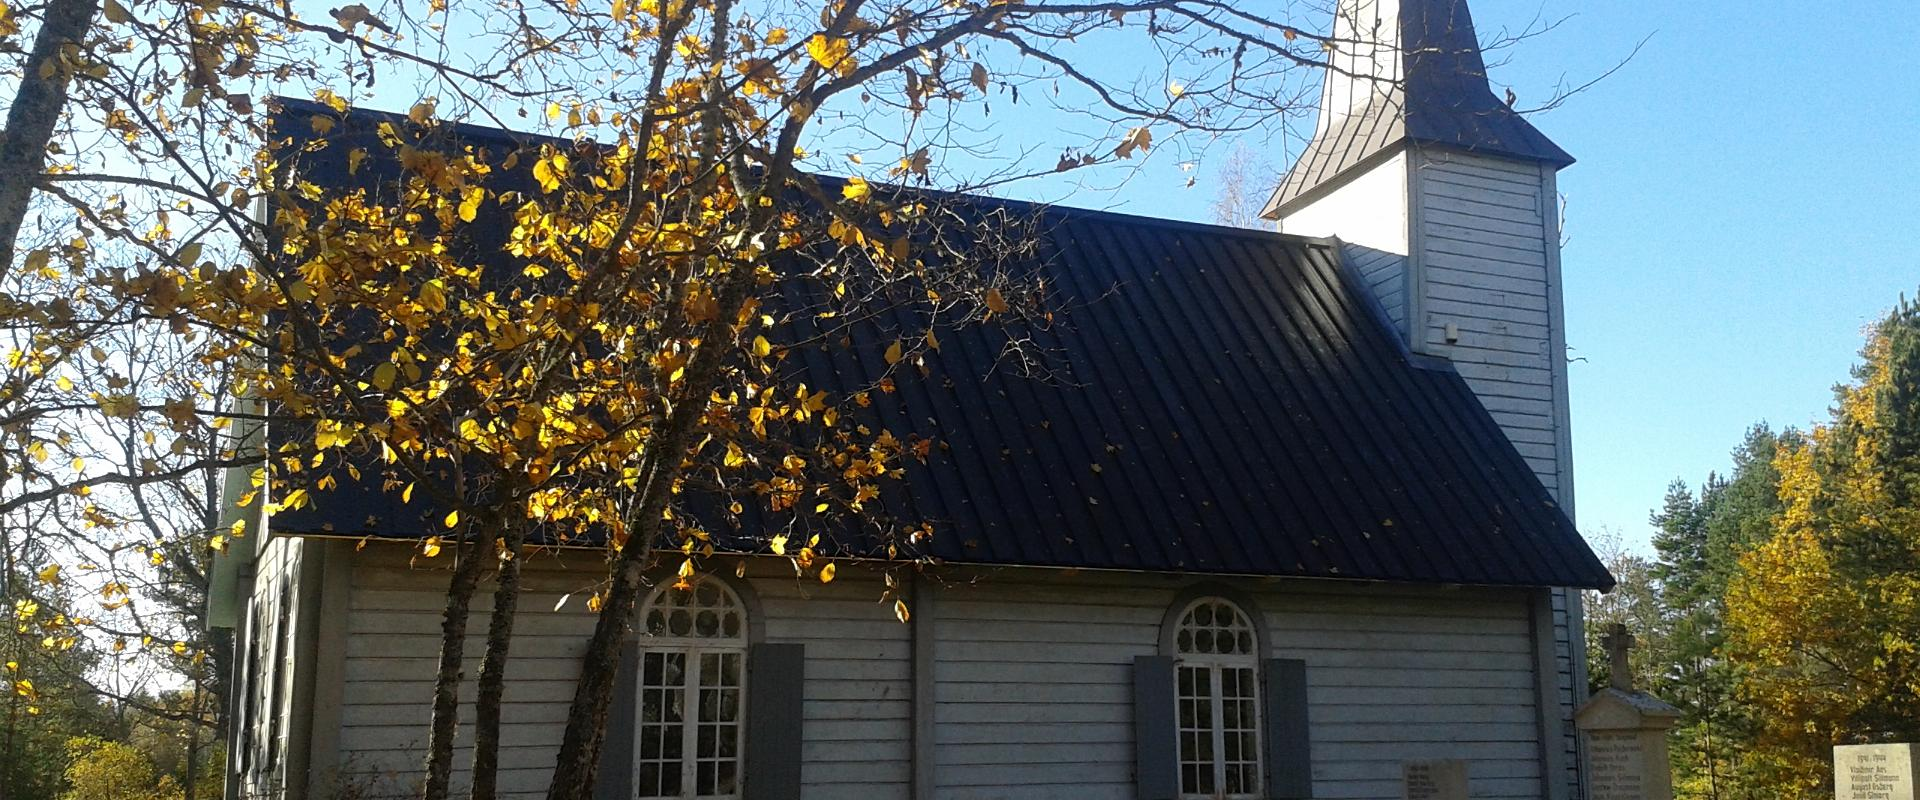 Nõva Church with its new roof in 2014